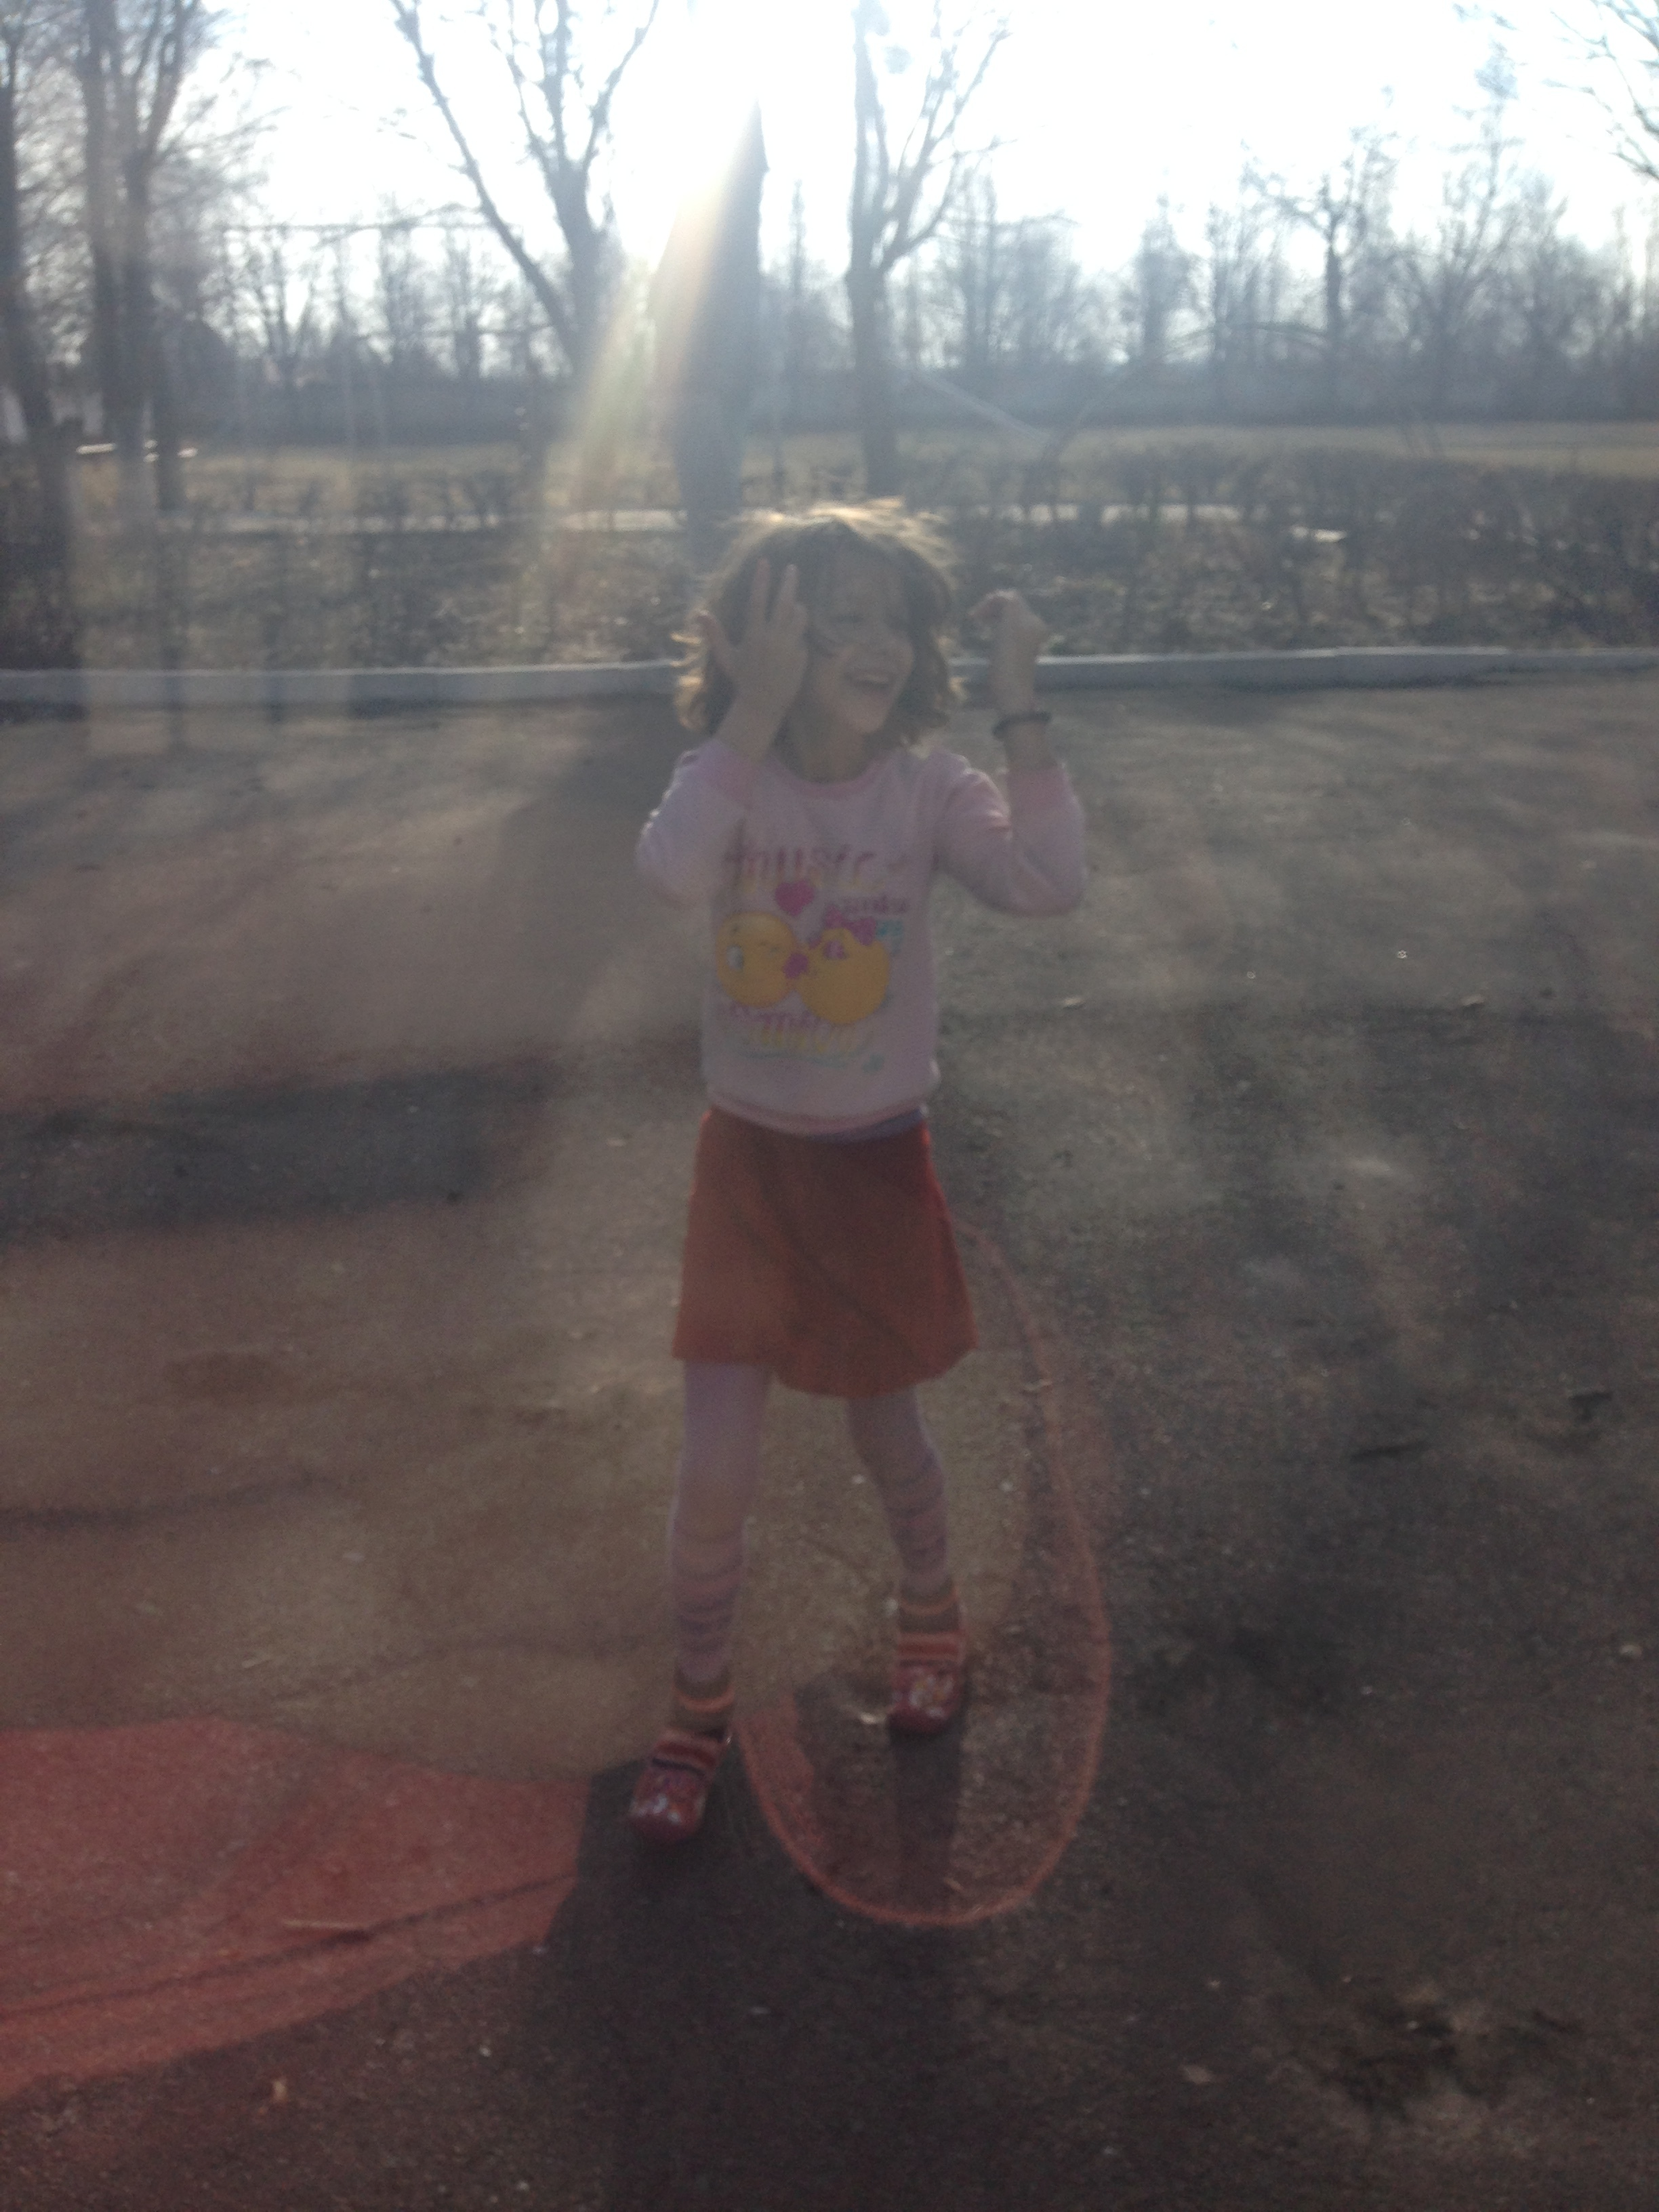 Not the best quality because I didn't have my camera with me, but this is one of the girls I played with at Zmerinka. She and several other kids waved goodbye and tried to crawl in the van with us as we left.